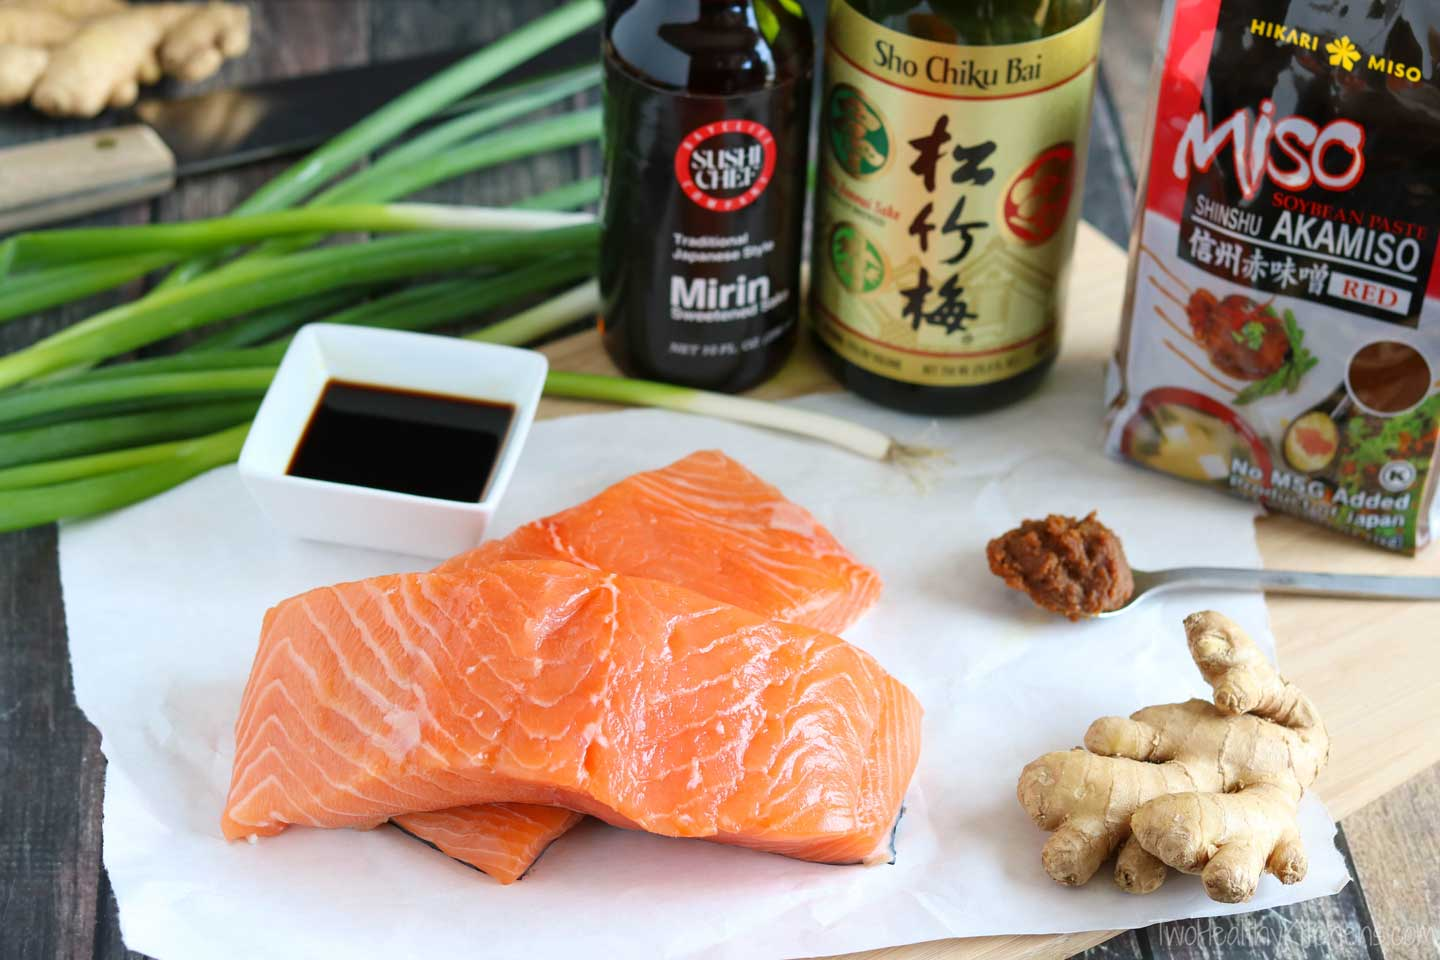 Just a few ingredients and beautifully fresh salmon are all you need to yield big flavors and terrific textures!